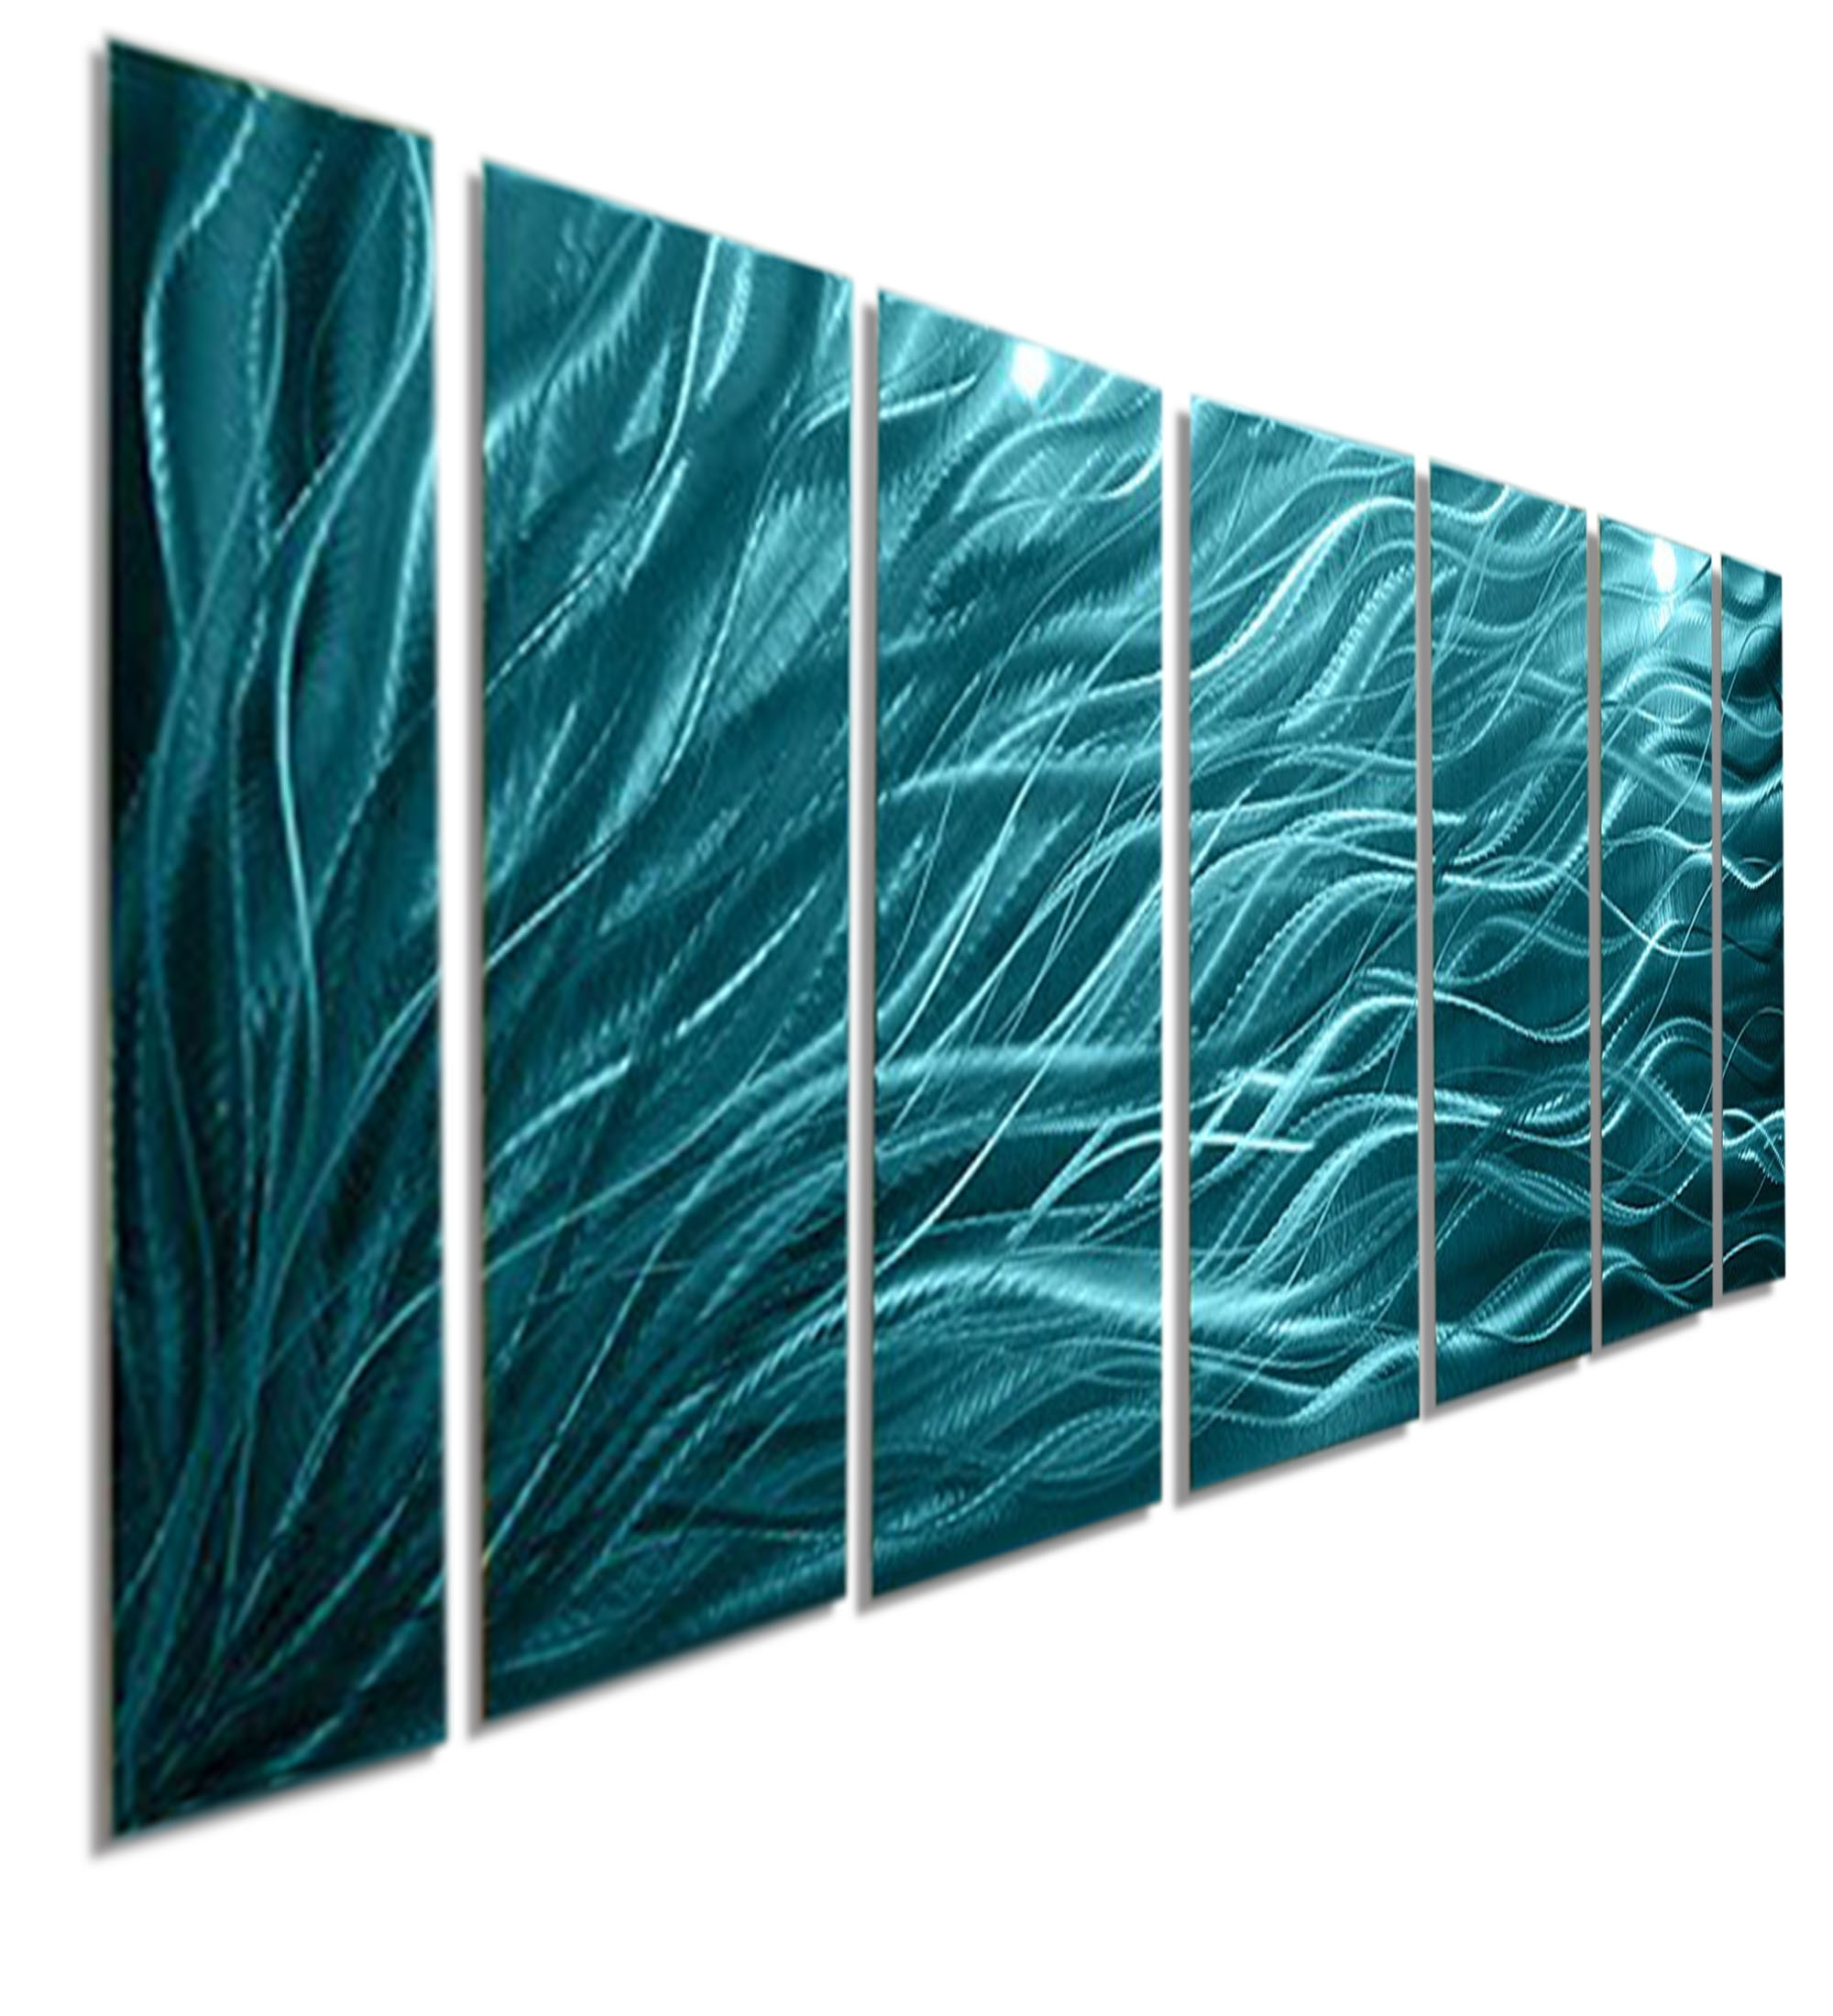 Rays Of Hope Aqua – Large Modern Abstract Metal Wall Artjon Regarding Most Current Teal Wall Art (Gallery 4 of 15)